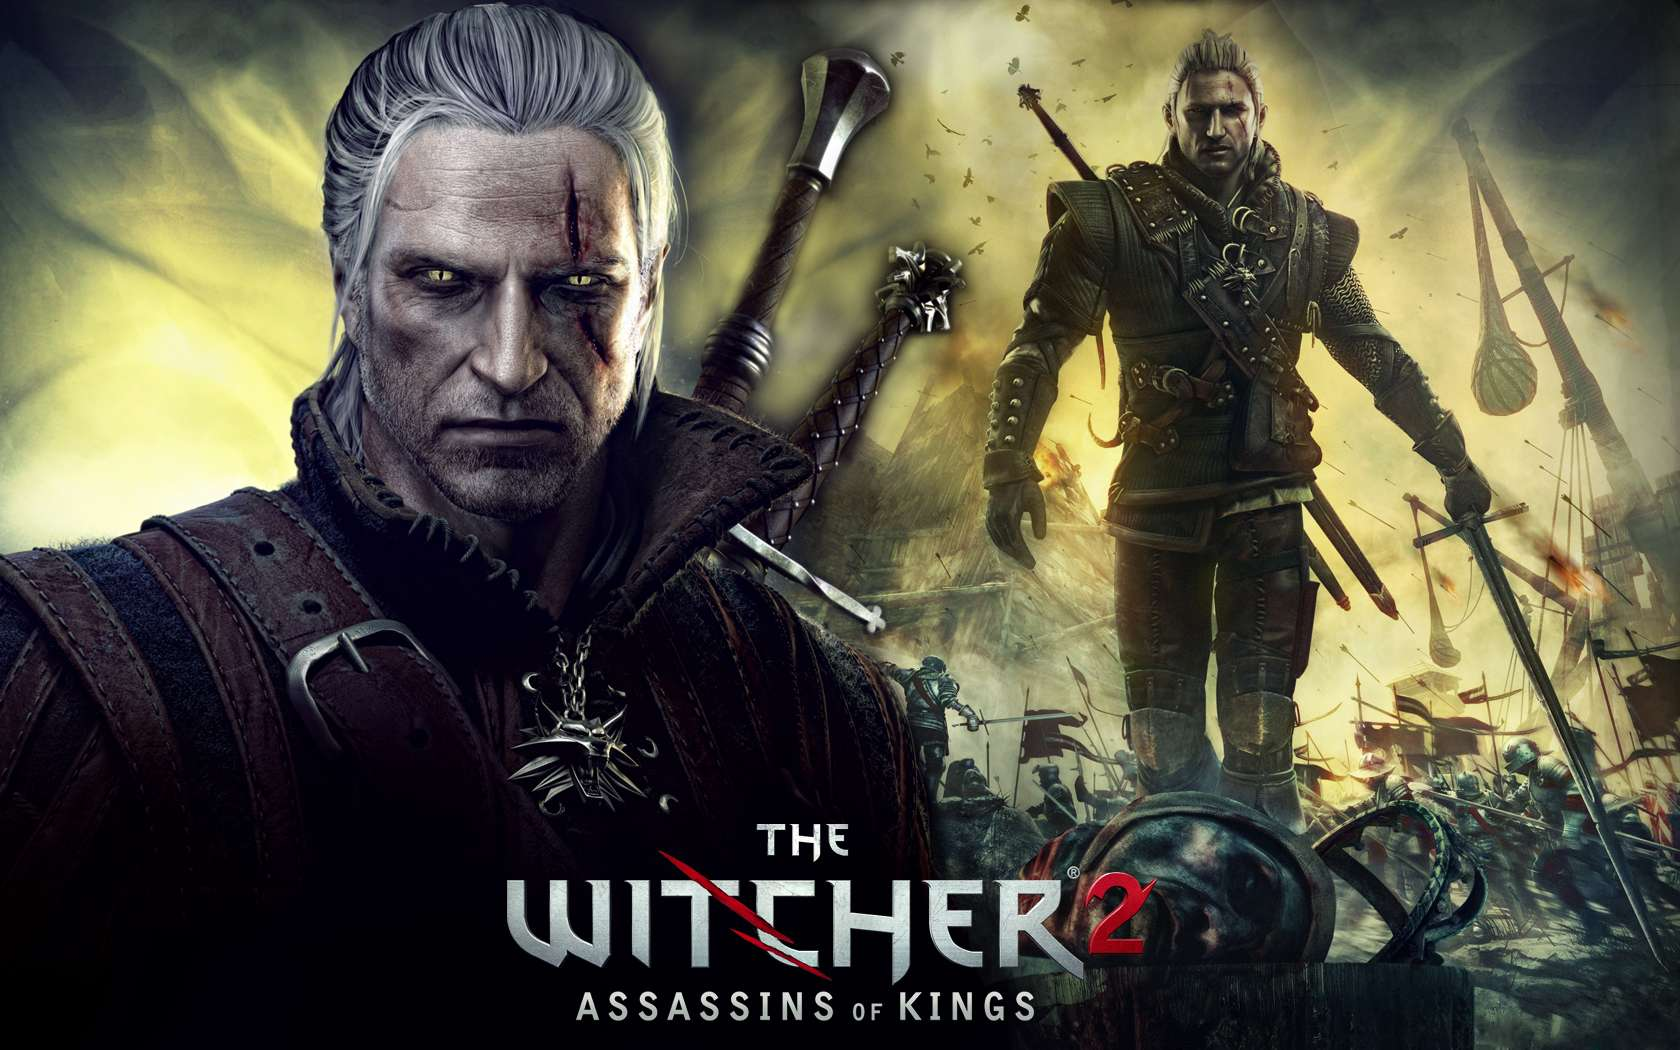 The Witcher 2 Gaming Wallpaper Wallpapers Library 1680x1050